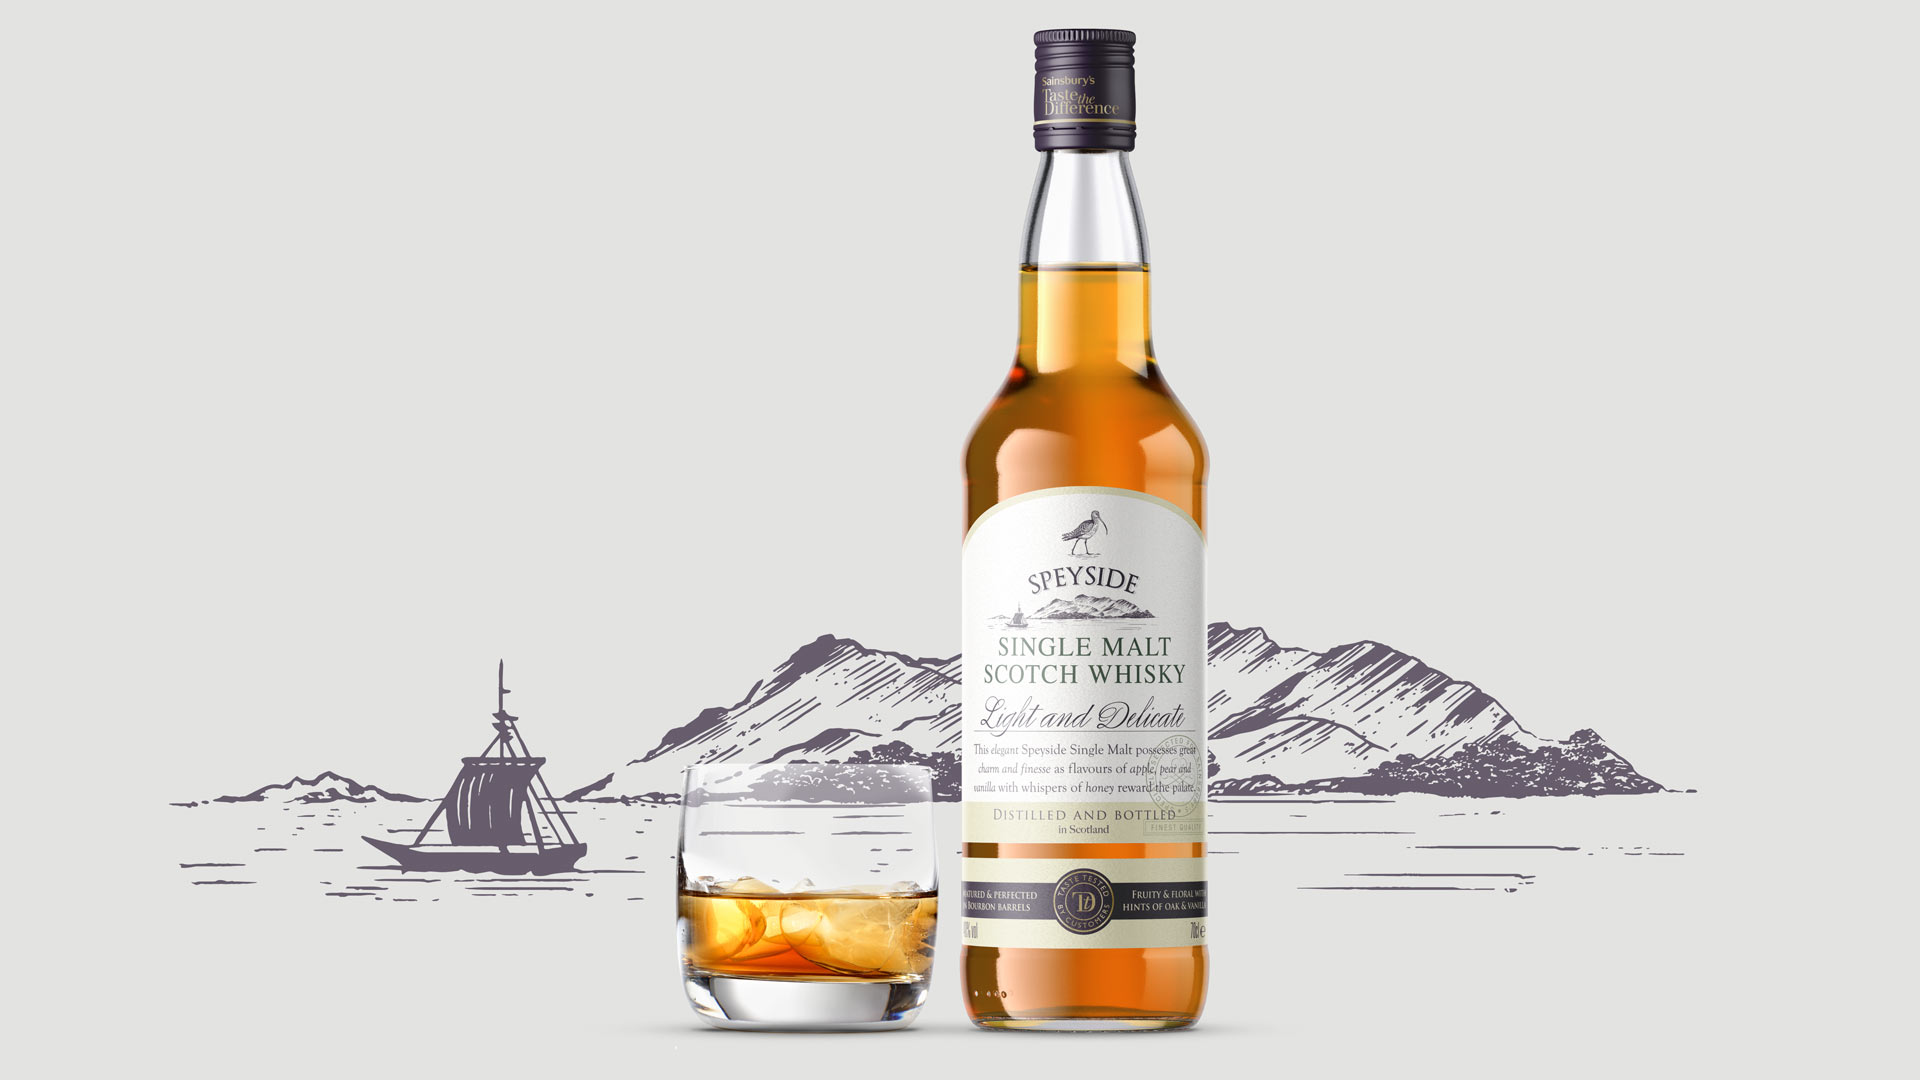 Sainsbury's - Scotch Whisky